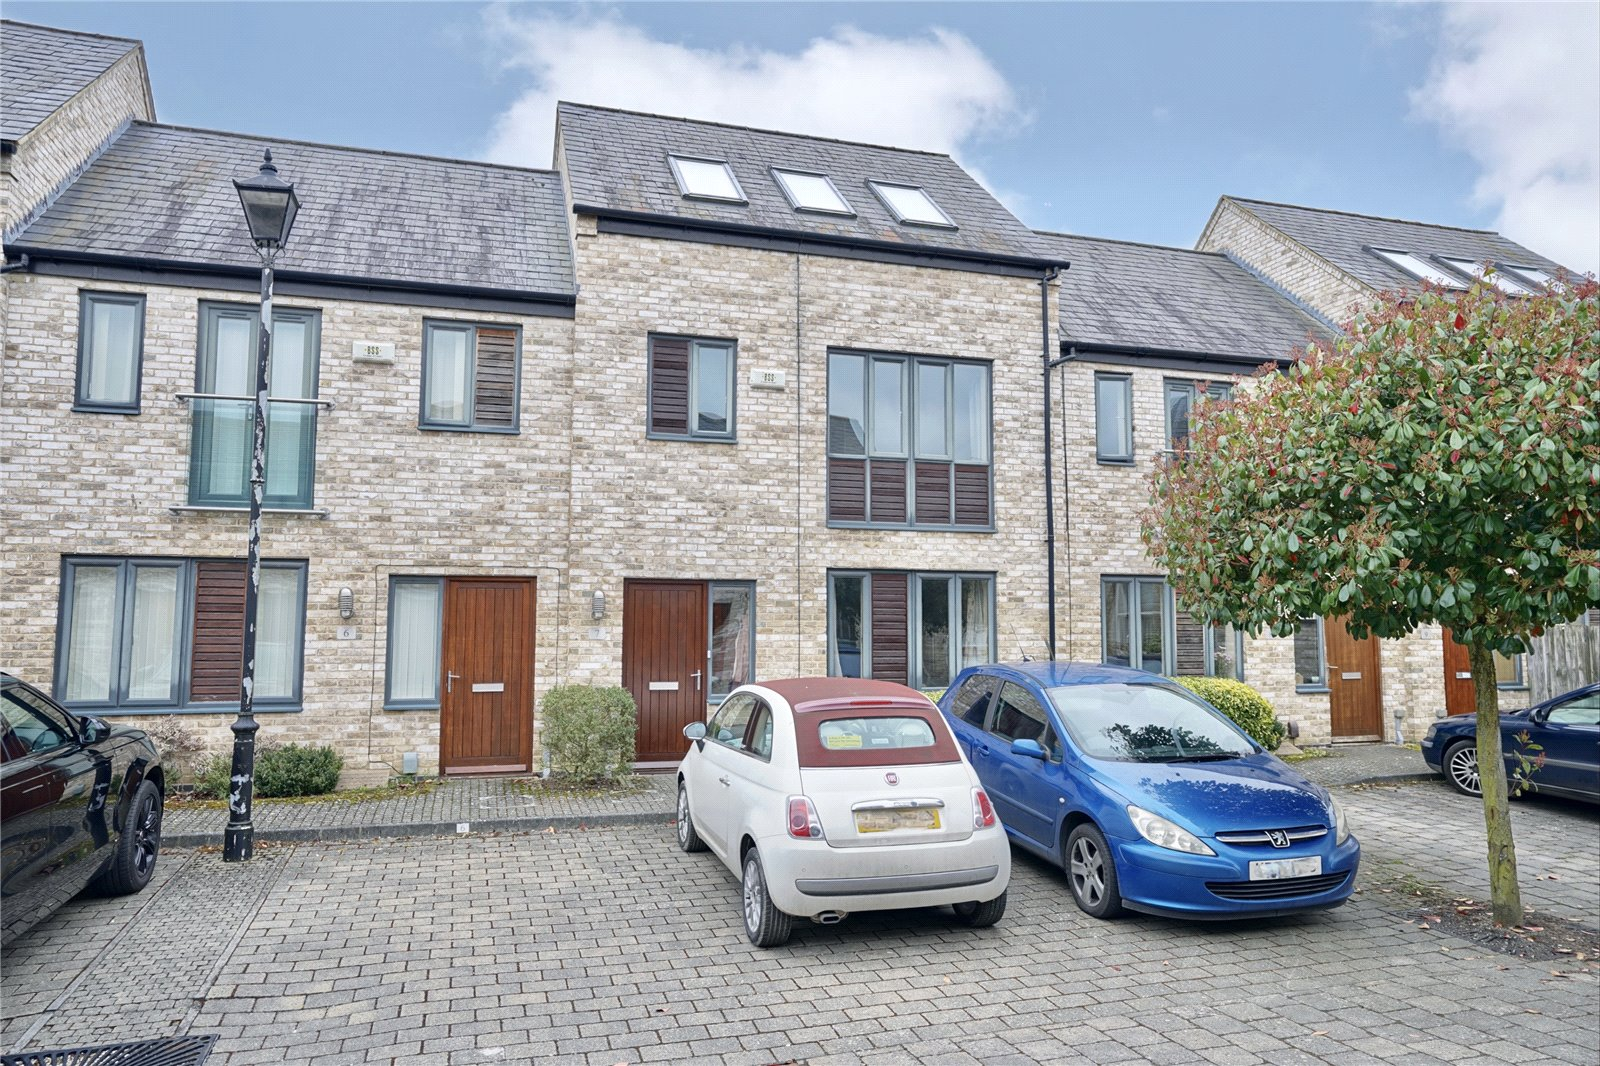 3 bed house for sale in St. Ives, PE27 5RP - Property Image 1